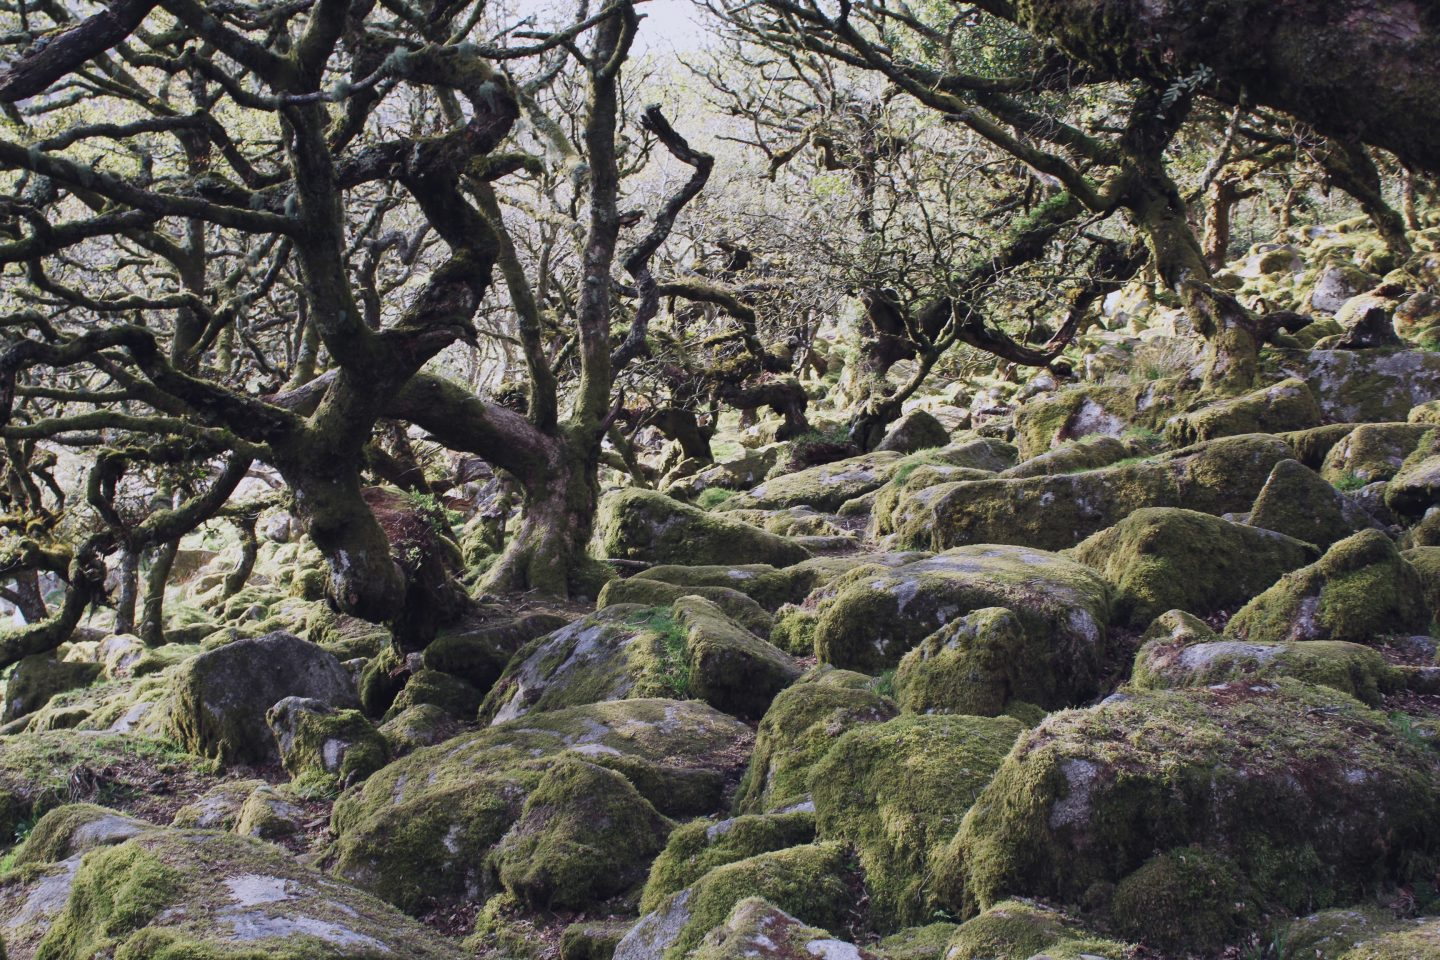 Enchanted Woodland at Wistman's Wood, Dartmoor